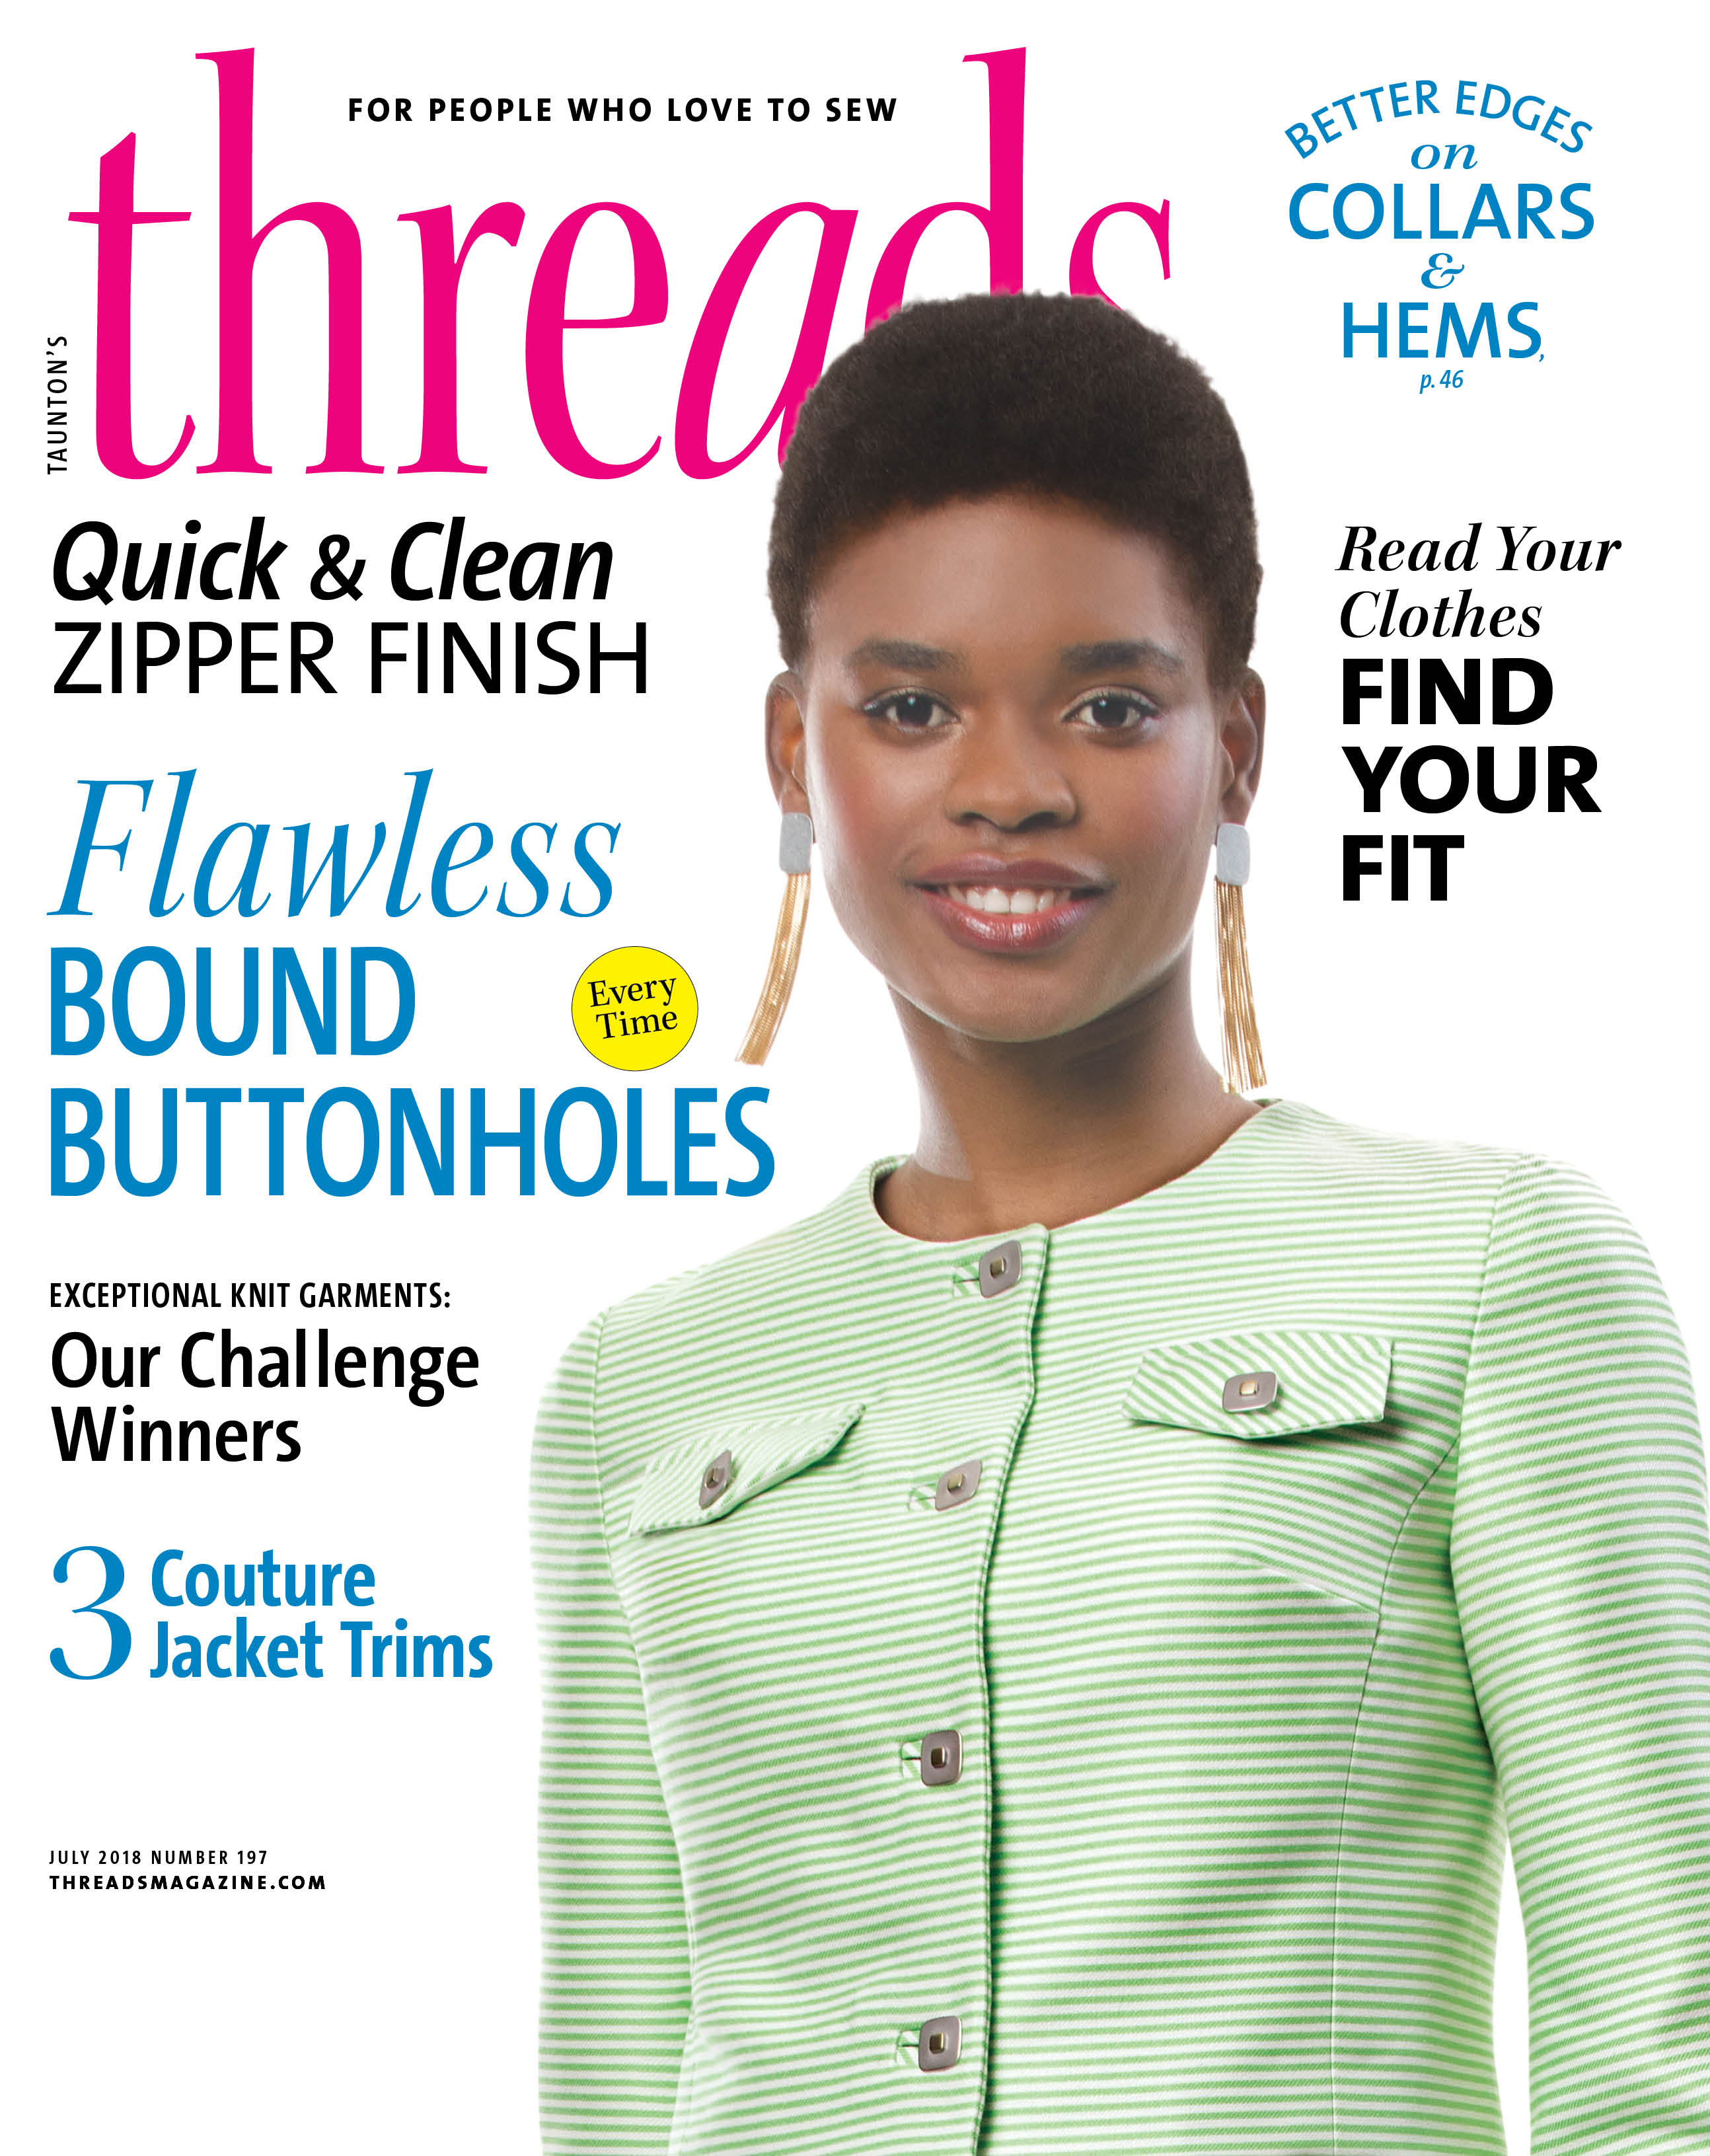 Threads Magazine - Threads #197, June/July 2018